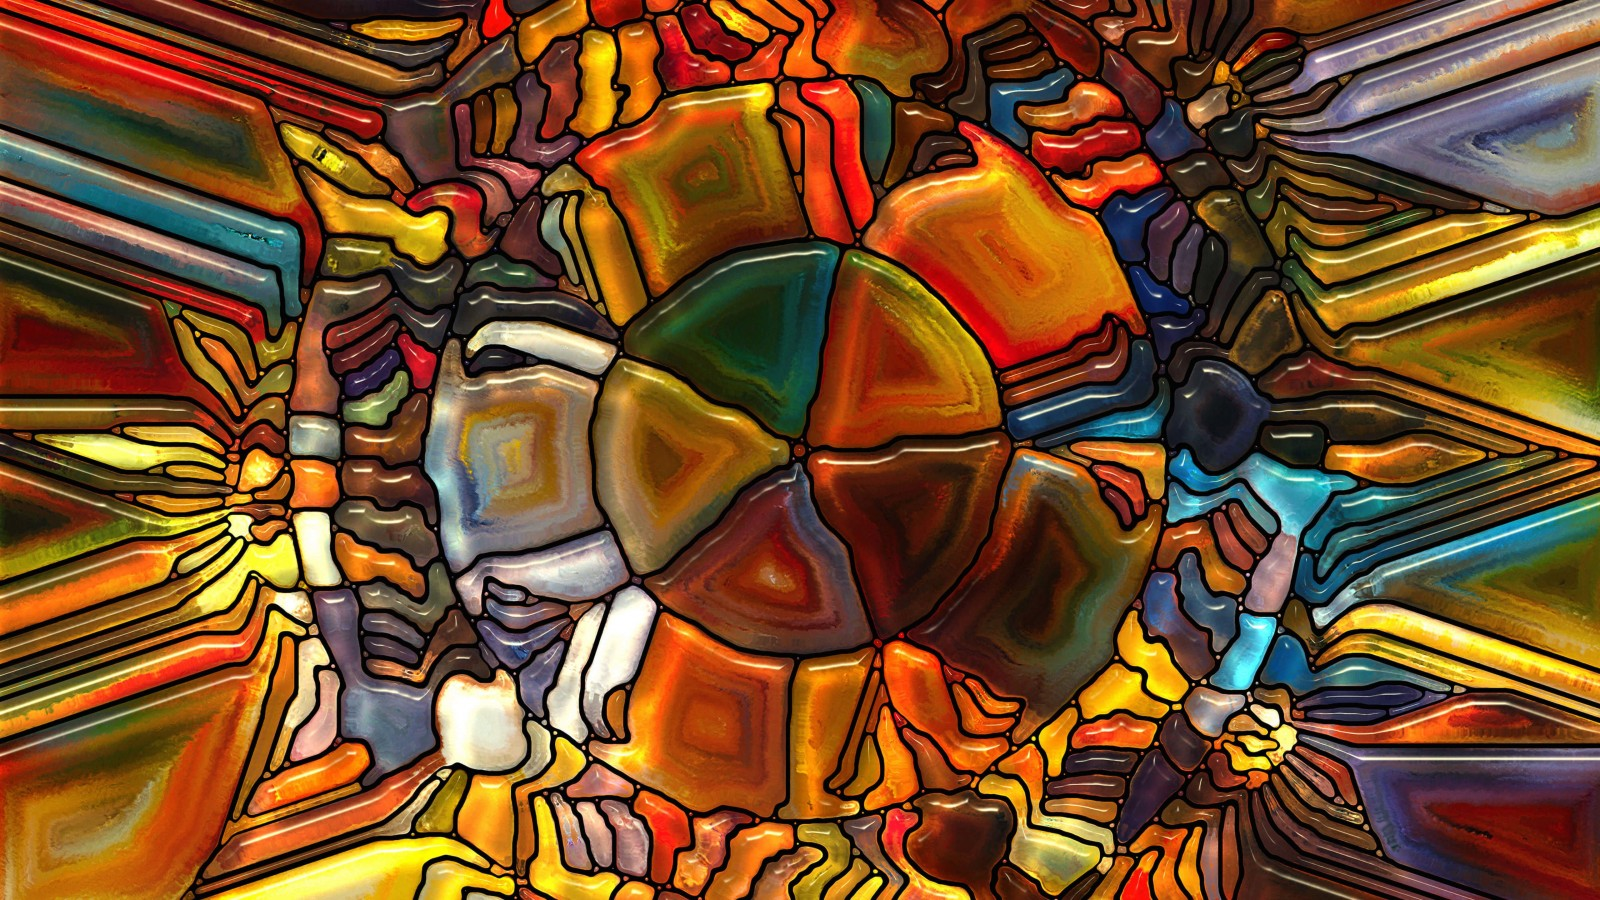 Psychedelic Stained Glass Wallpaper for Desktop 1600x900